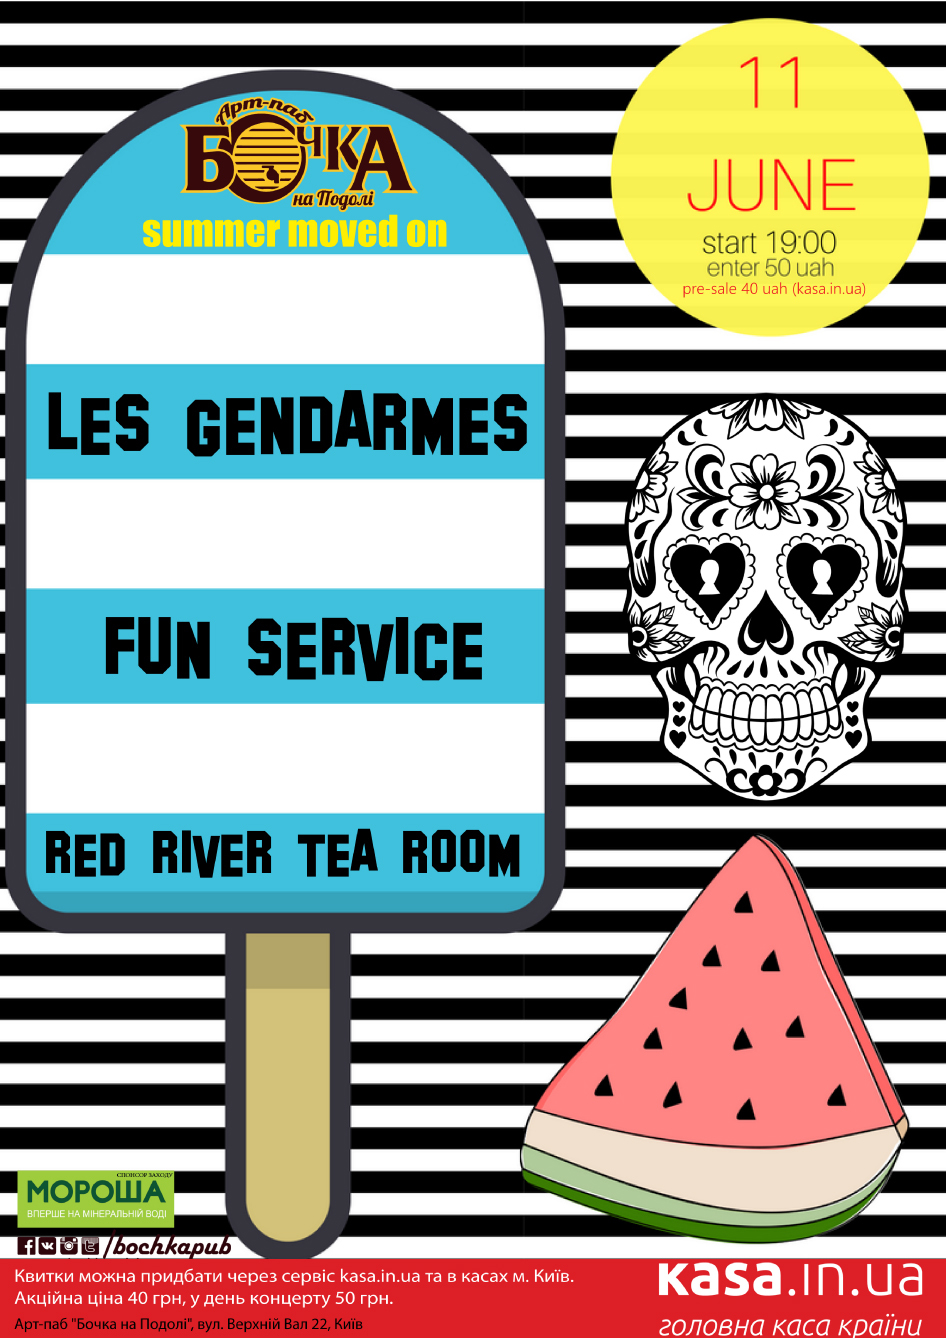 Summer Moved On: FUN SERVICE, LES GENDARMES, RED RIVER TEA ROOM